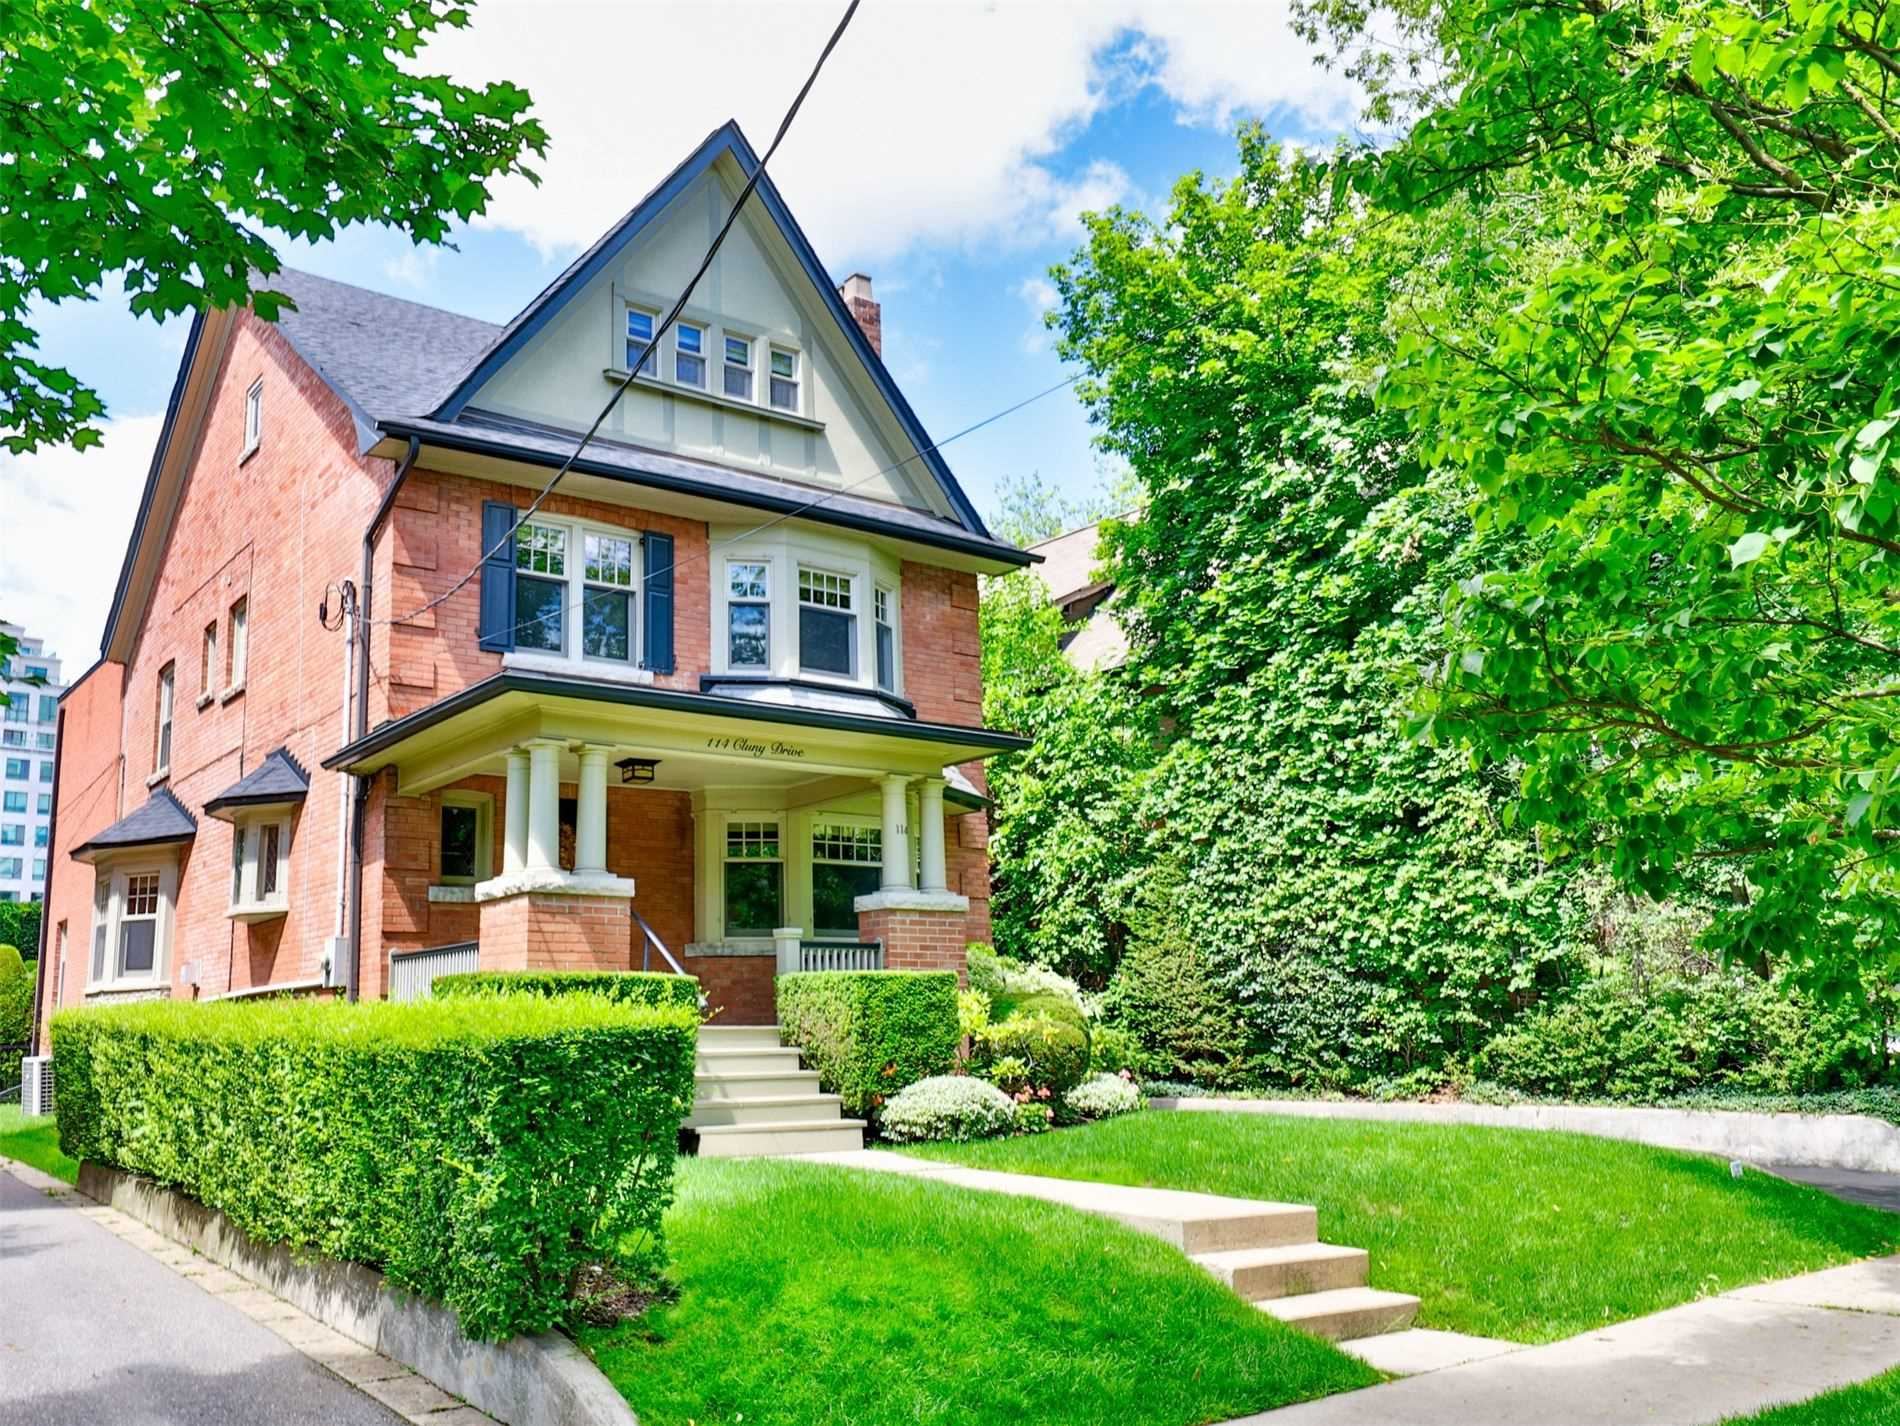 Detached house For Sale In Toronto - 114 Cluny Dr, Toronto, Ontario, Canada M4W2R4 , 5 Bedrooms Bedrooms, ,4 BathroomsBathrooms,Detached,For Sale,Cluny